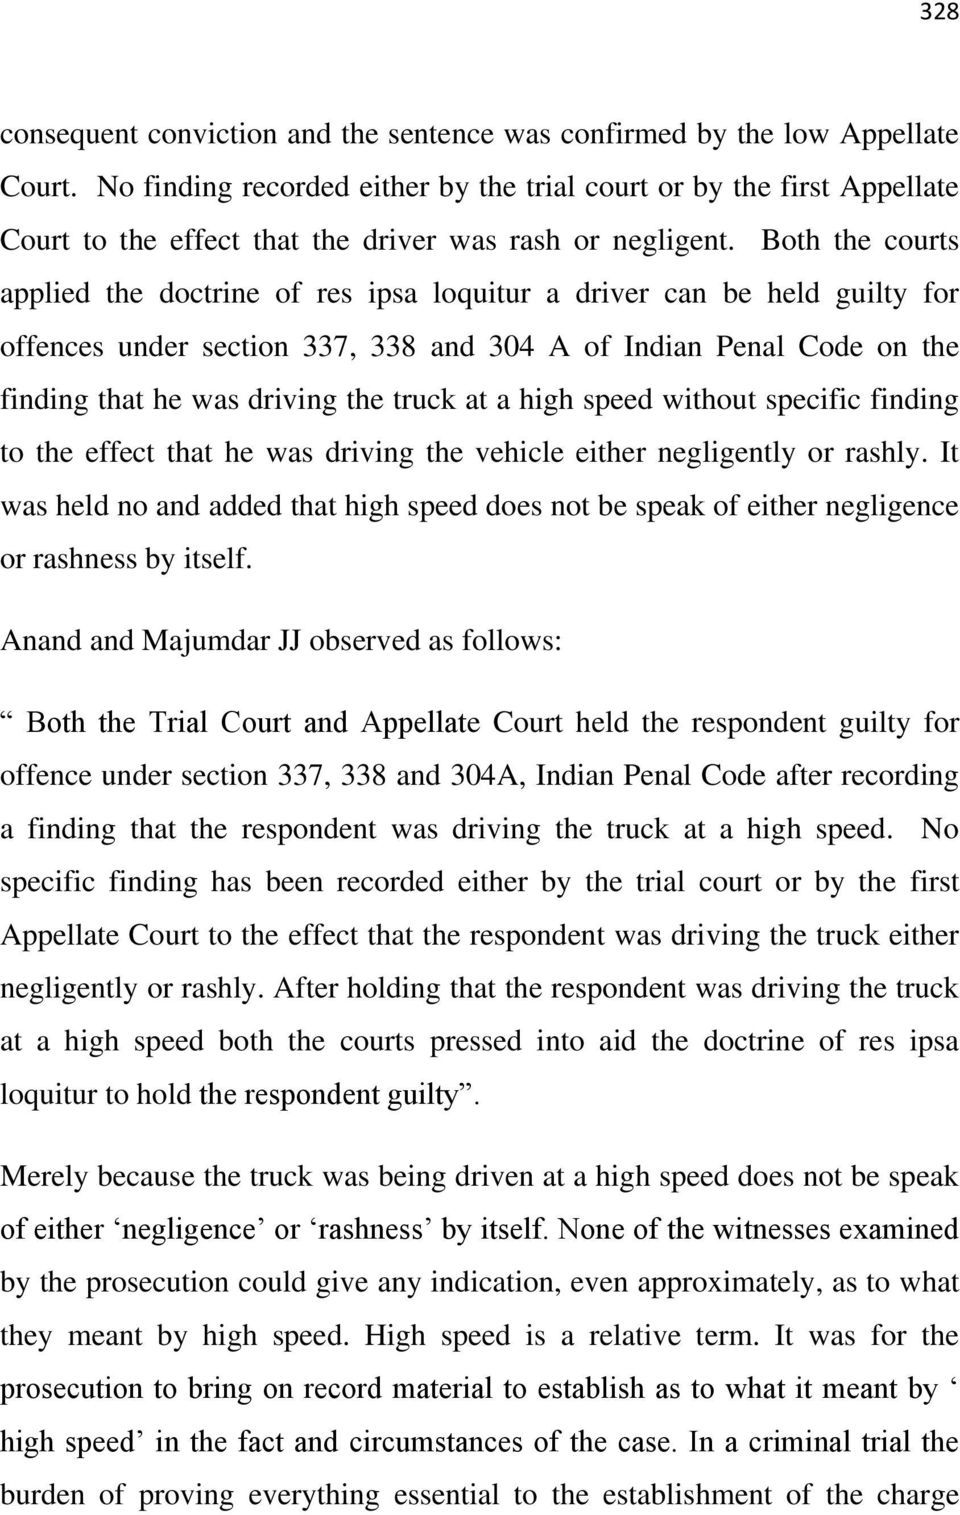 Both the courts applied the doctrine of res ipsa loquitur a driver can be held guilty for offences under section 337, 338 and 304 A of Indian Penal Code on the finding that he was driving the truck